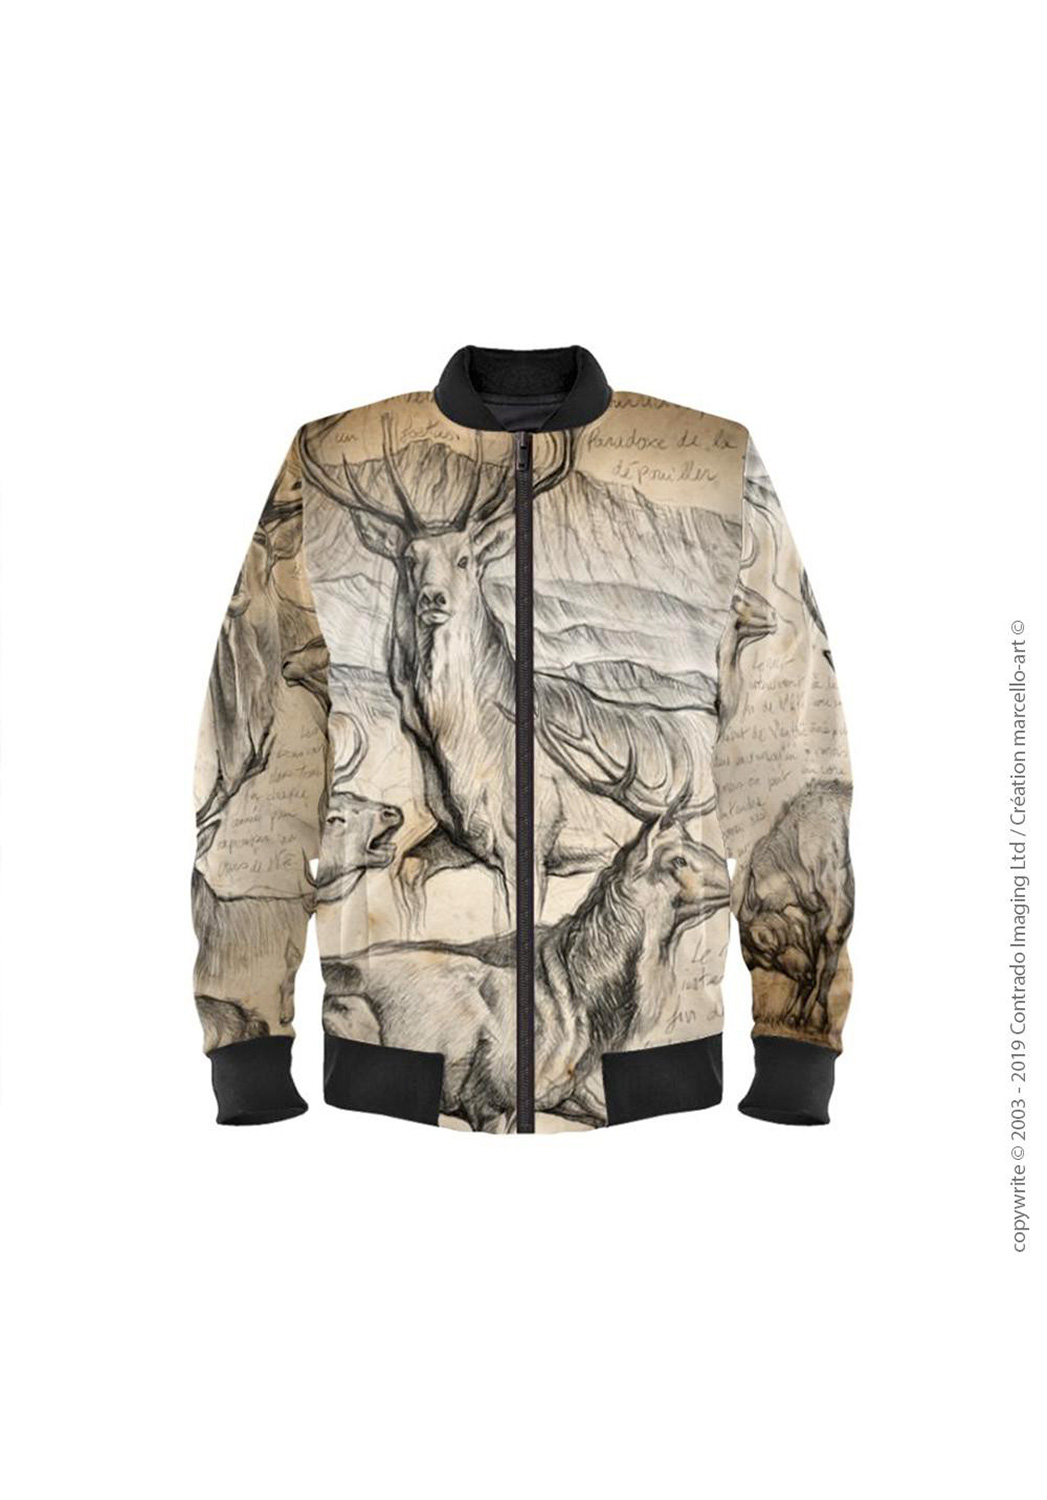 Marcello-art: Bombers Bomber 295 Deer slab